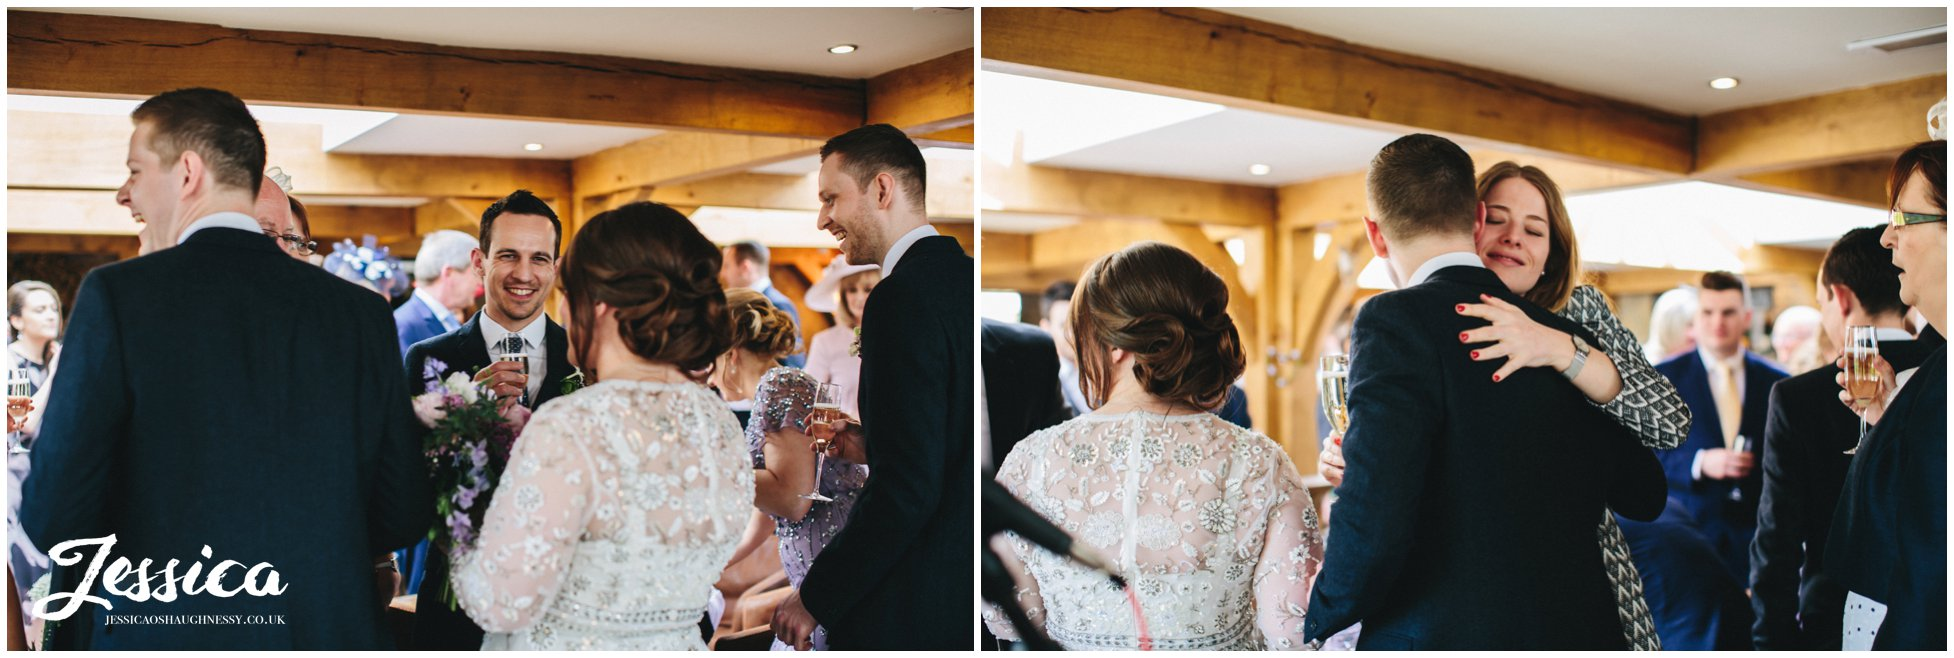 guests congratulation newly wed's after their ceremony